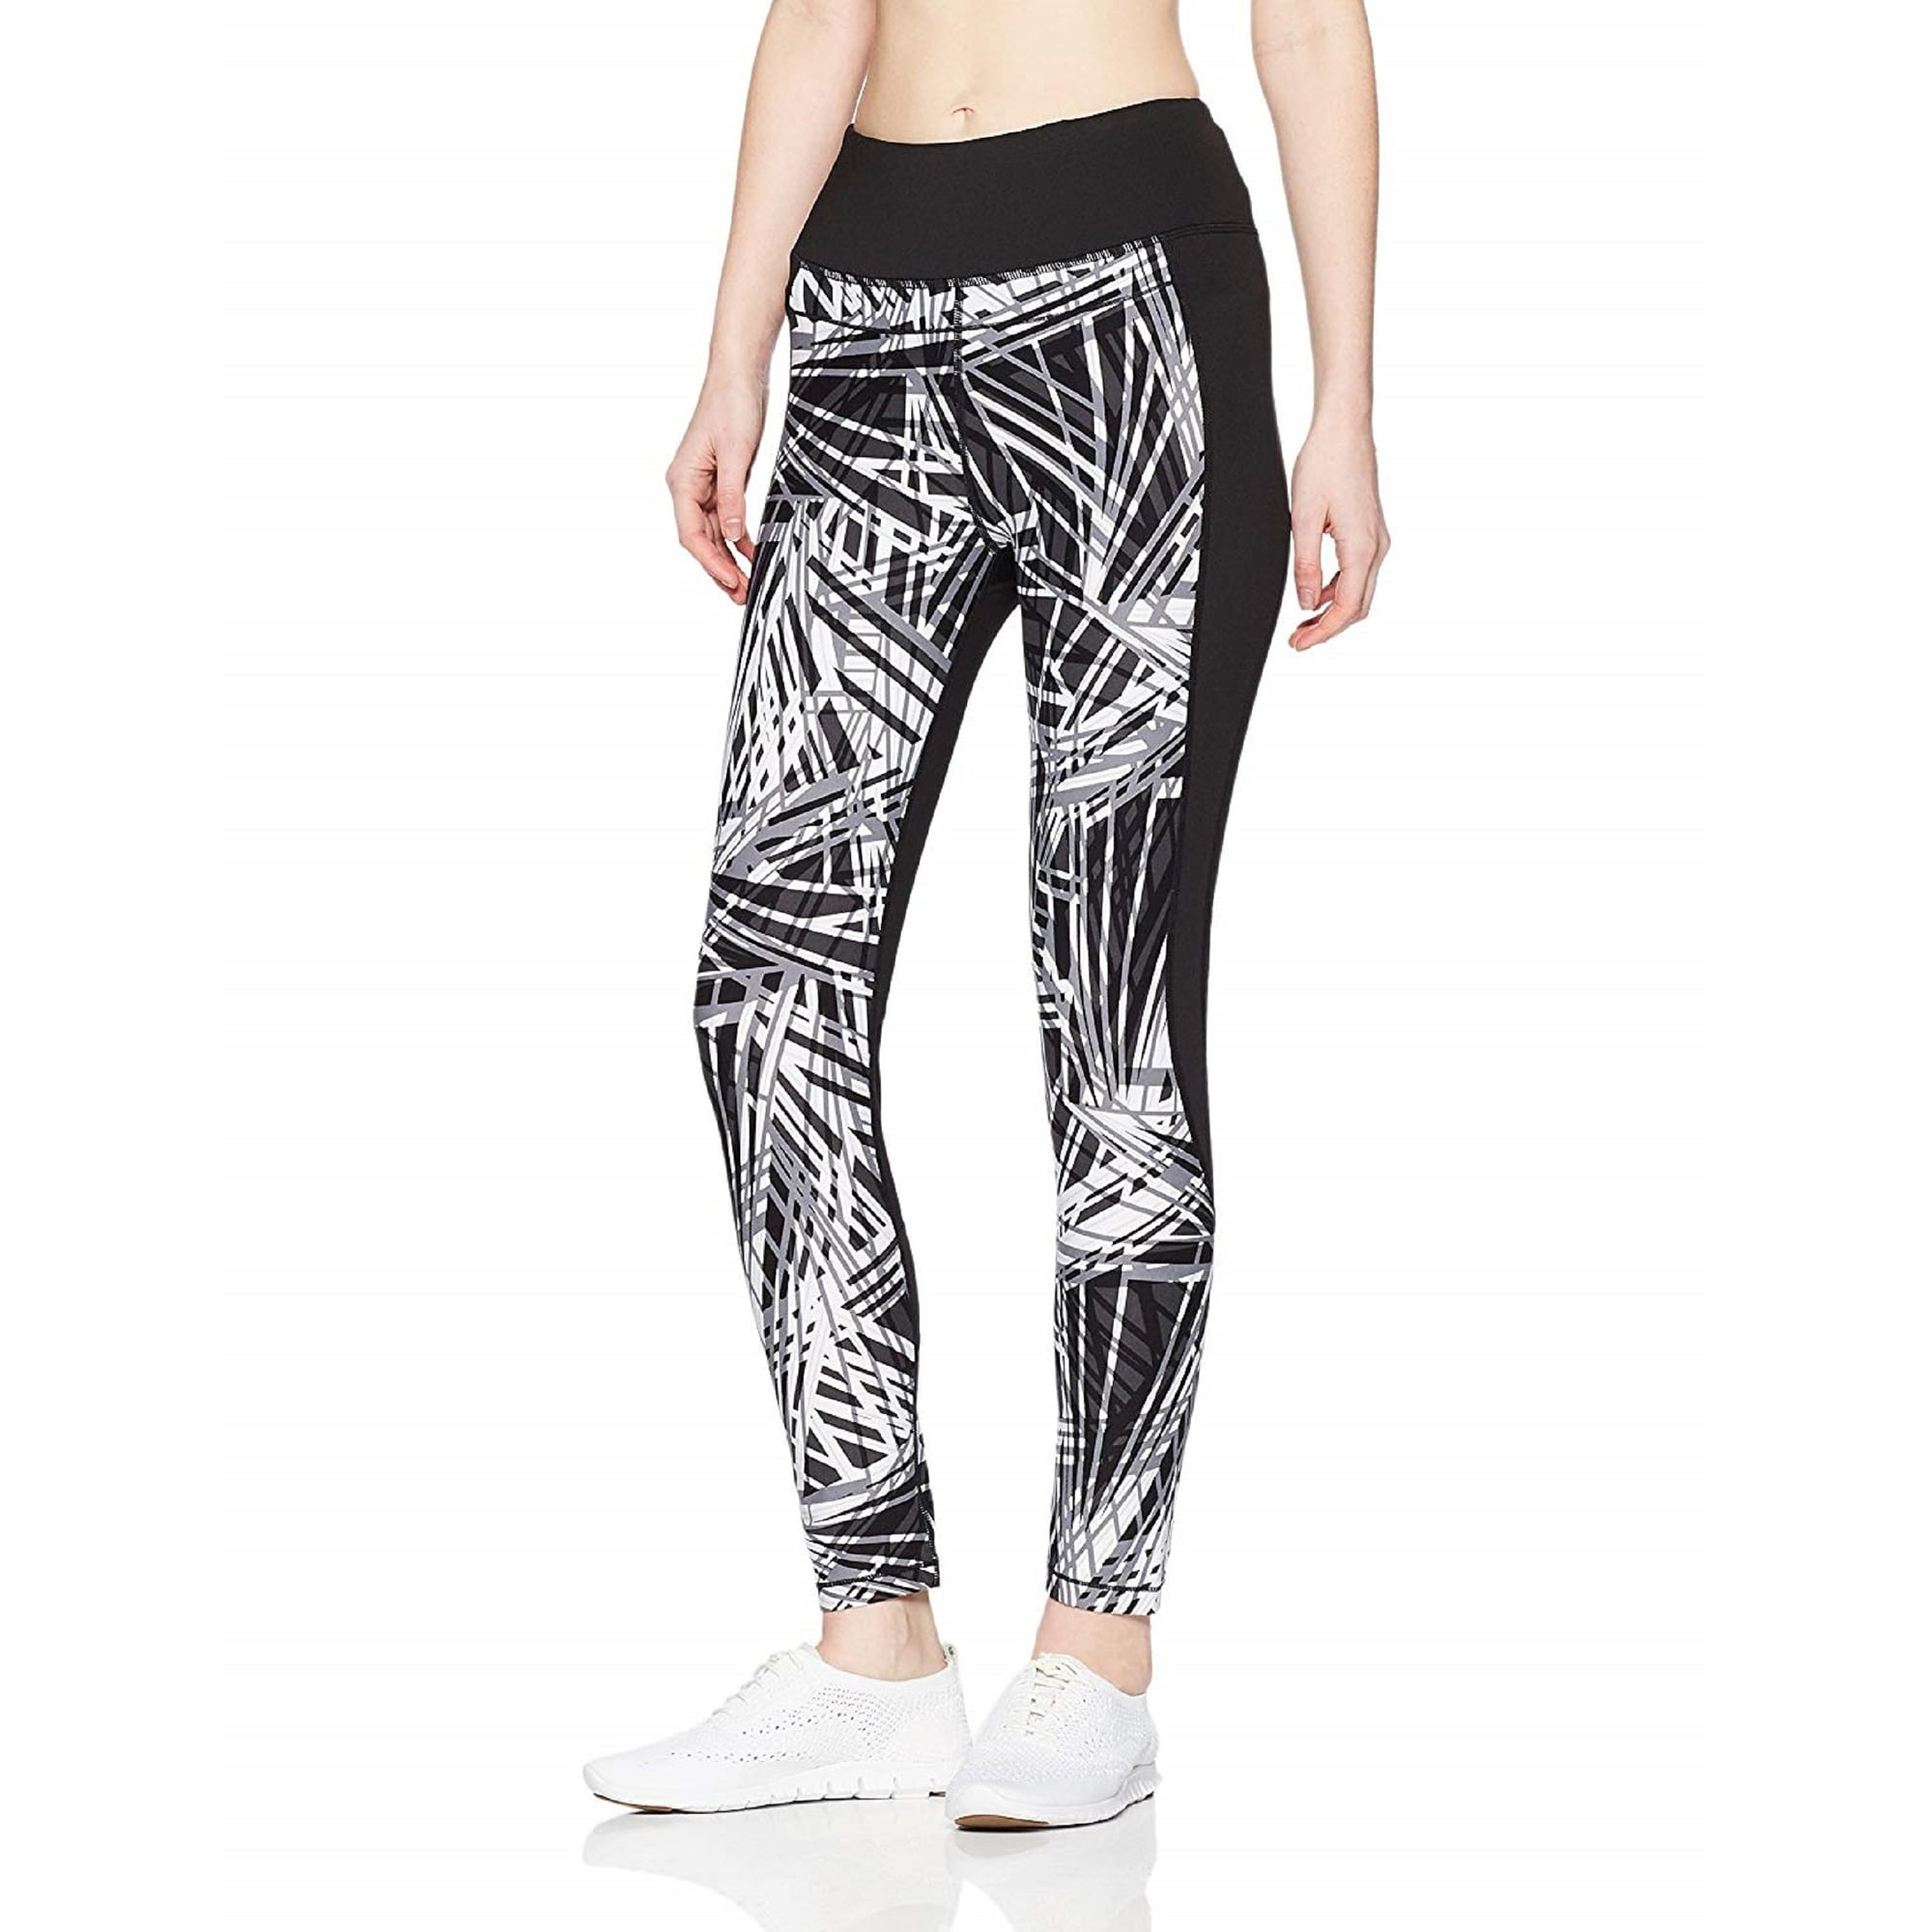 Women/'s High Waisted Cropped Leggings Size Small S